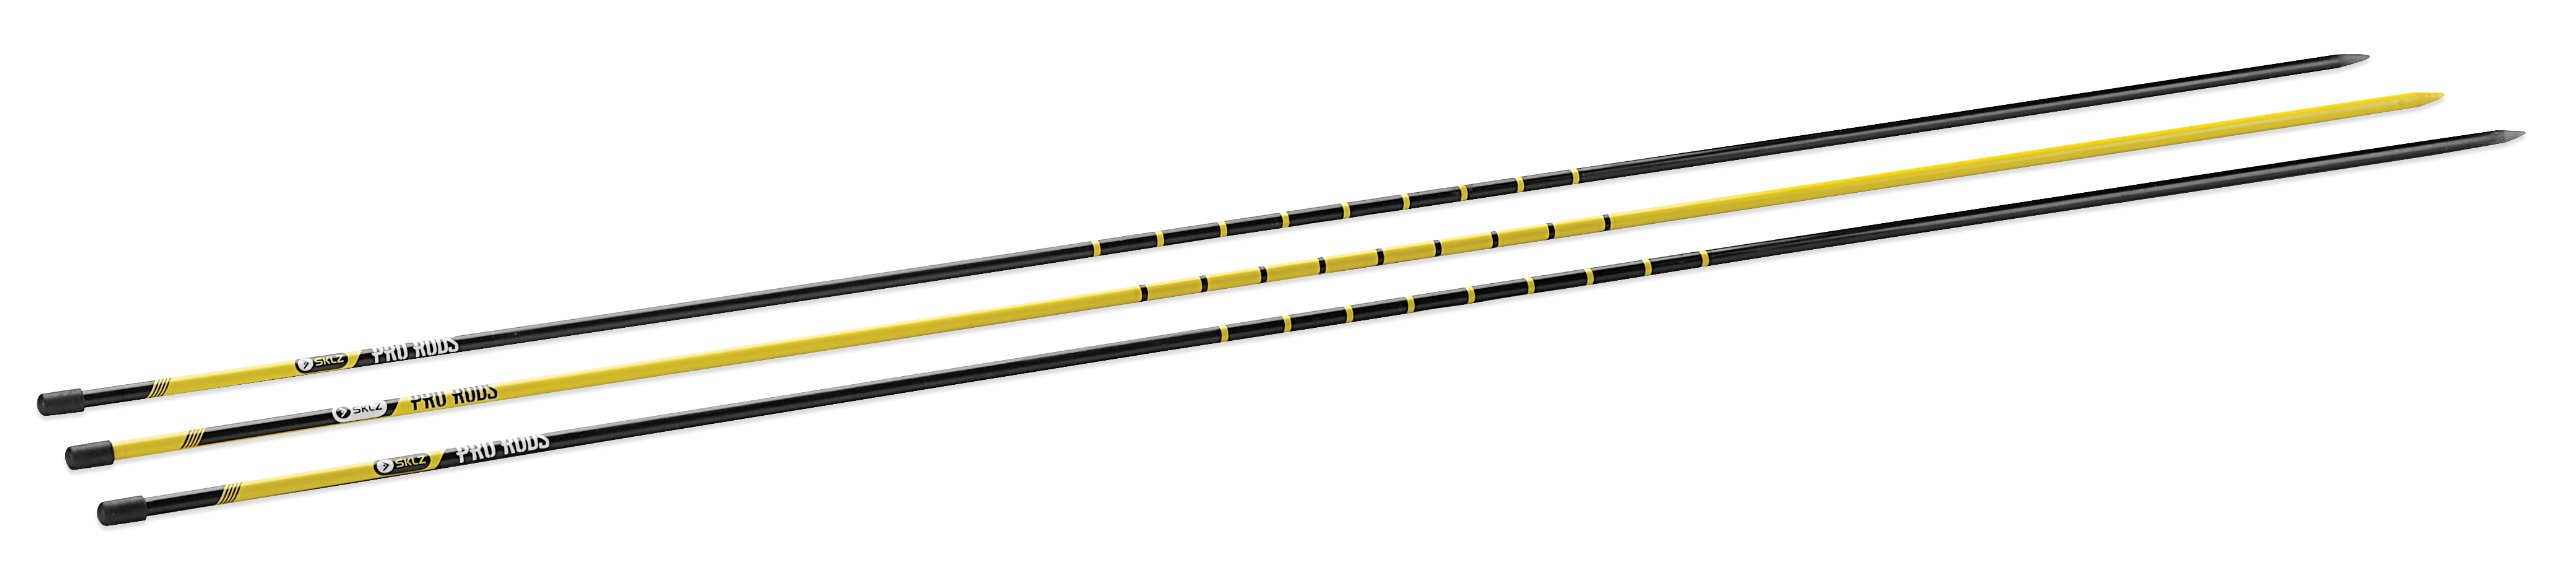 SKLZ Golf Alignment Sticks Training Aid with 3 Sticks by SKLZ